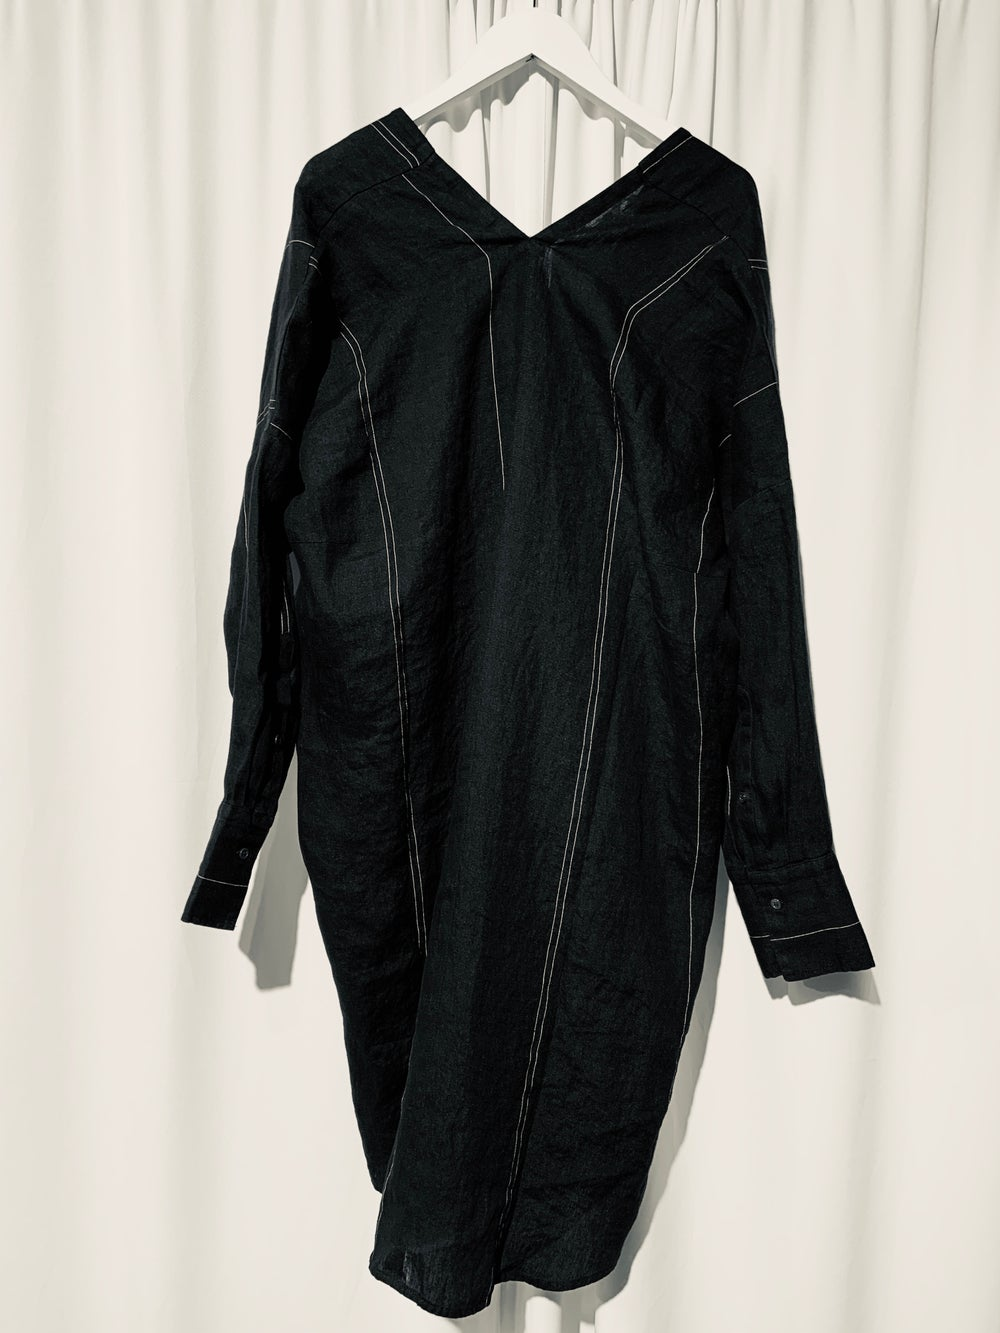 NYGARDSANNA Long Shirt dress